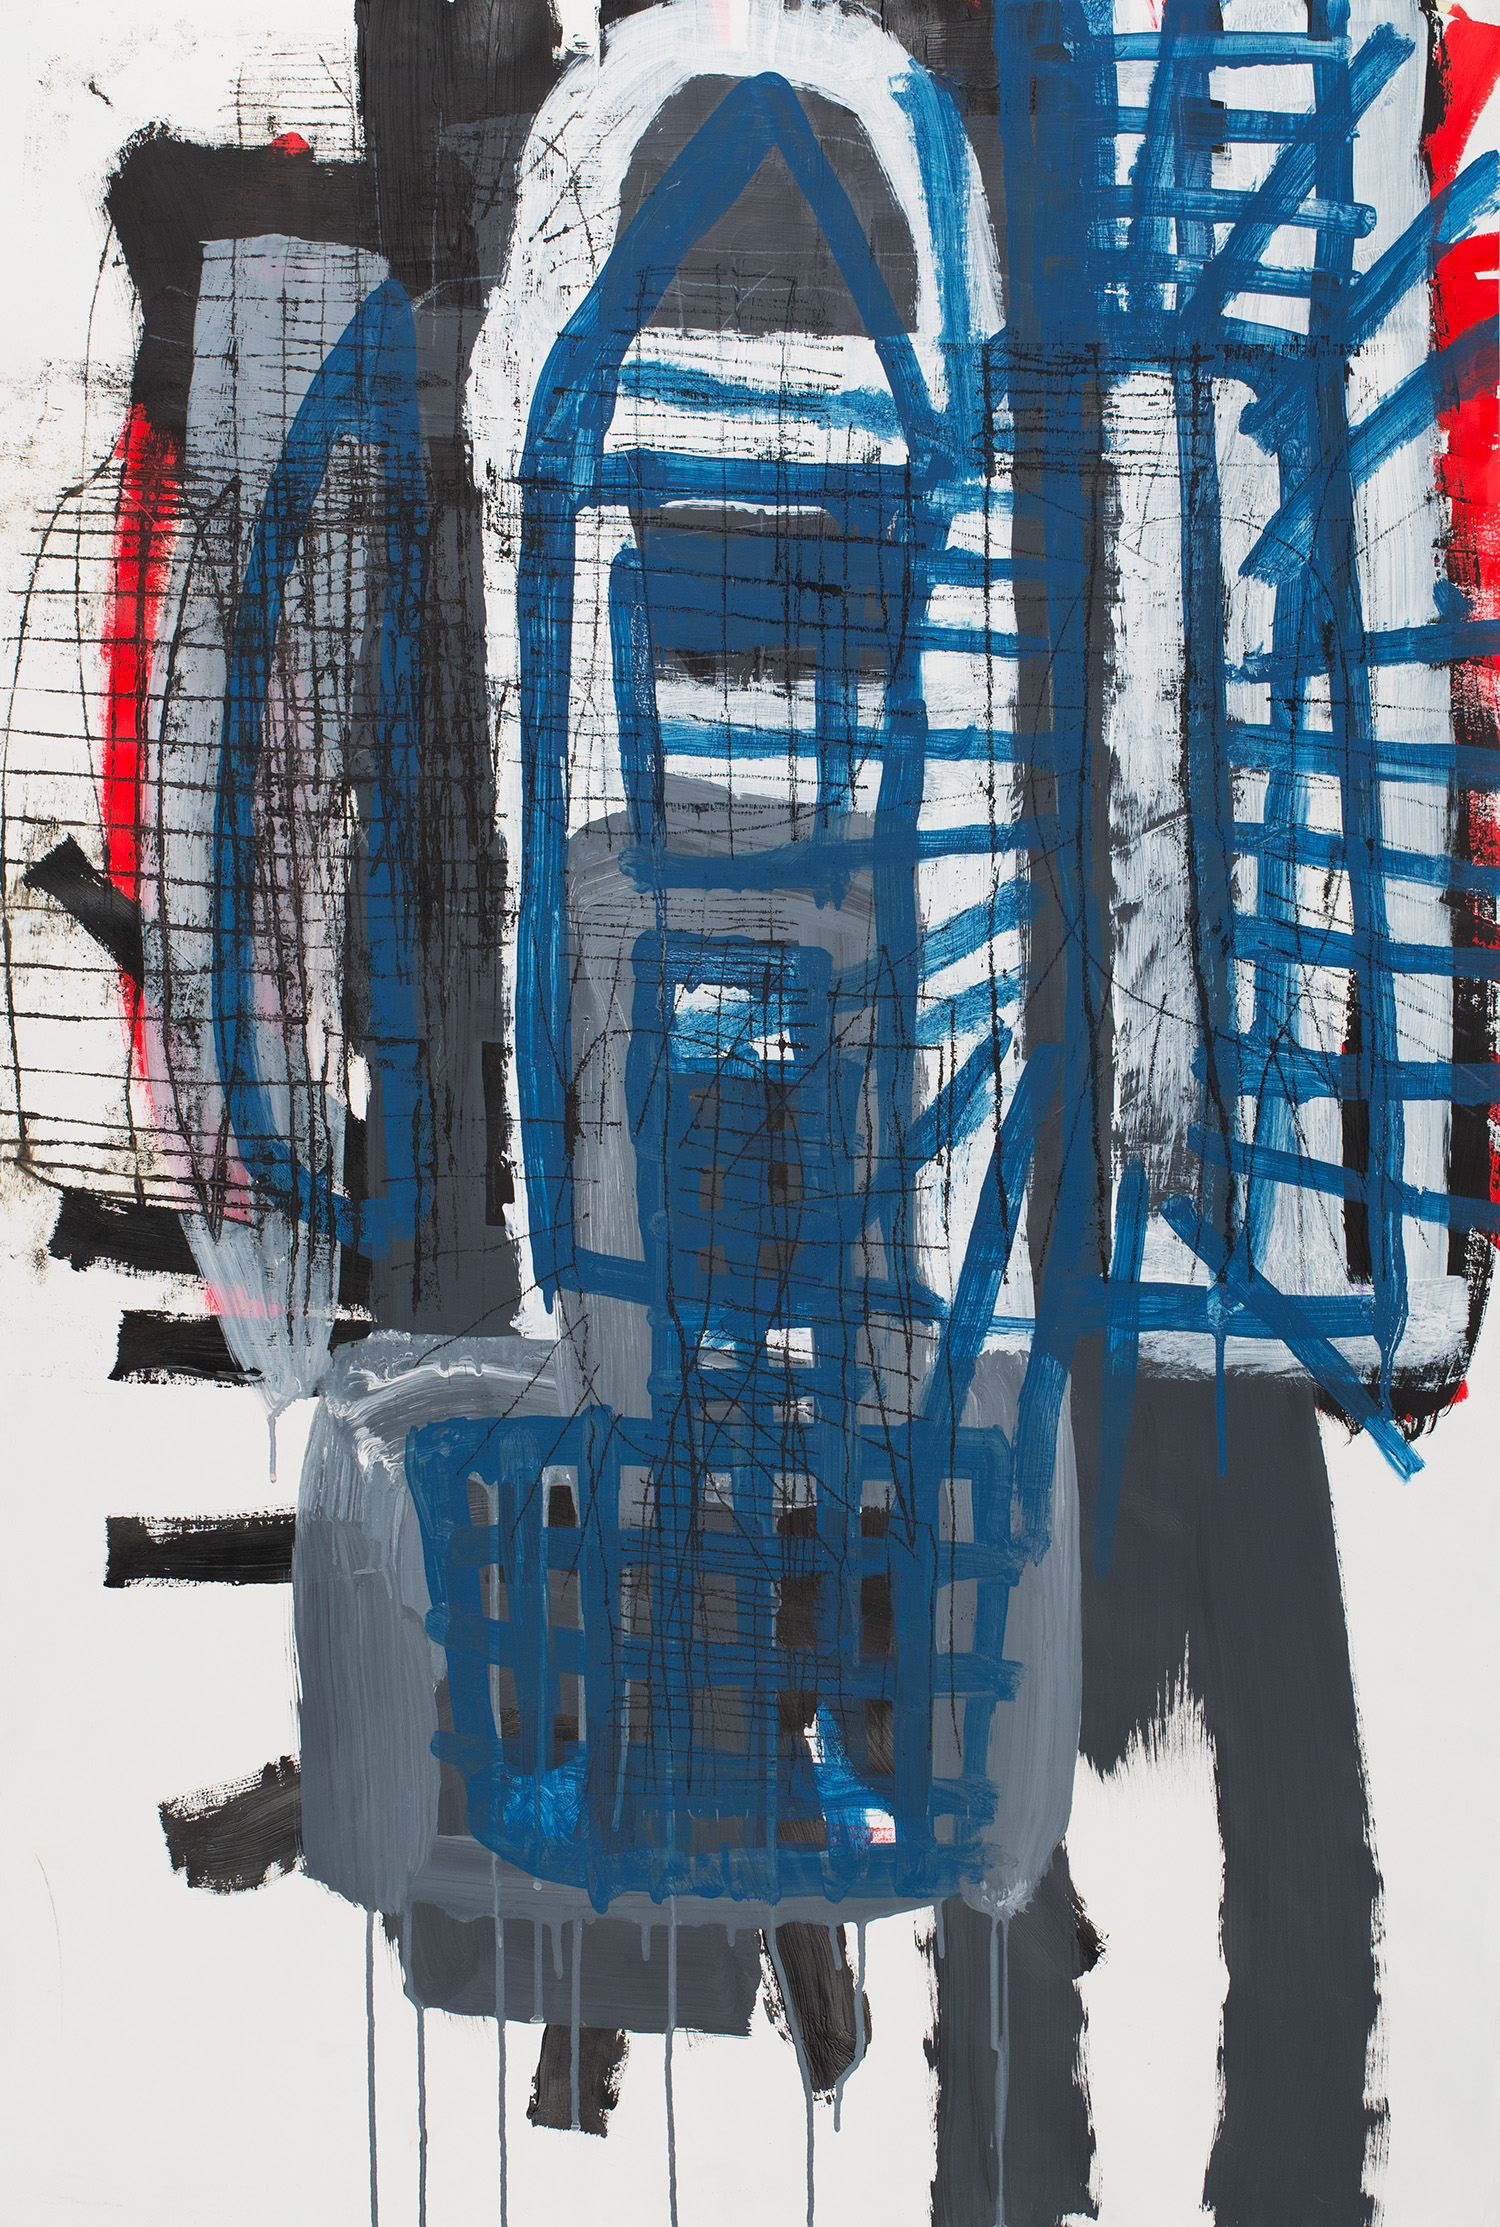 Philippe Da Fonseca  Untitled  , 2009 Mixed media on paper 43.31 x 28.74 inches 110 x 73 cm PDF 9